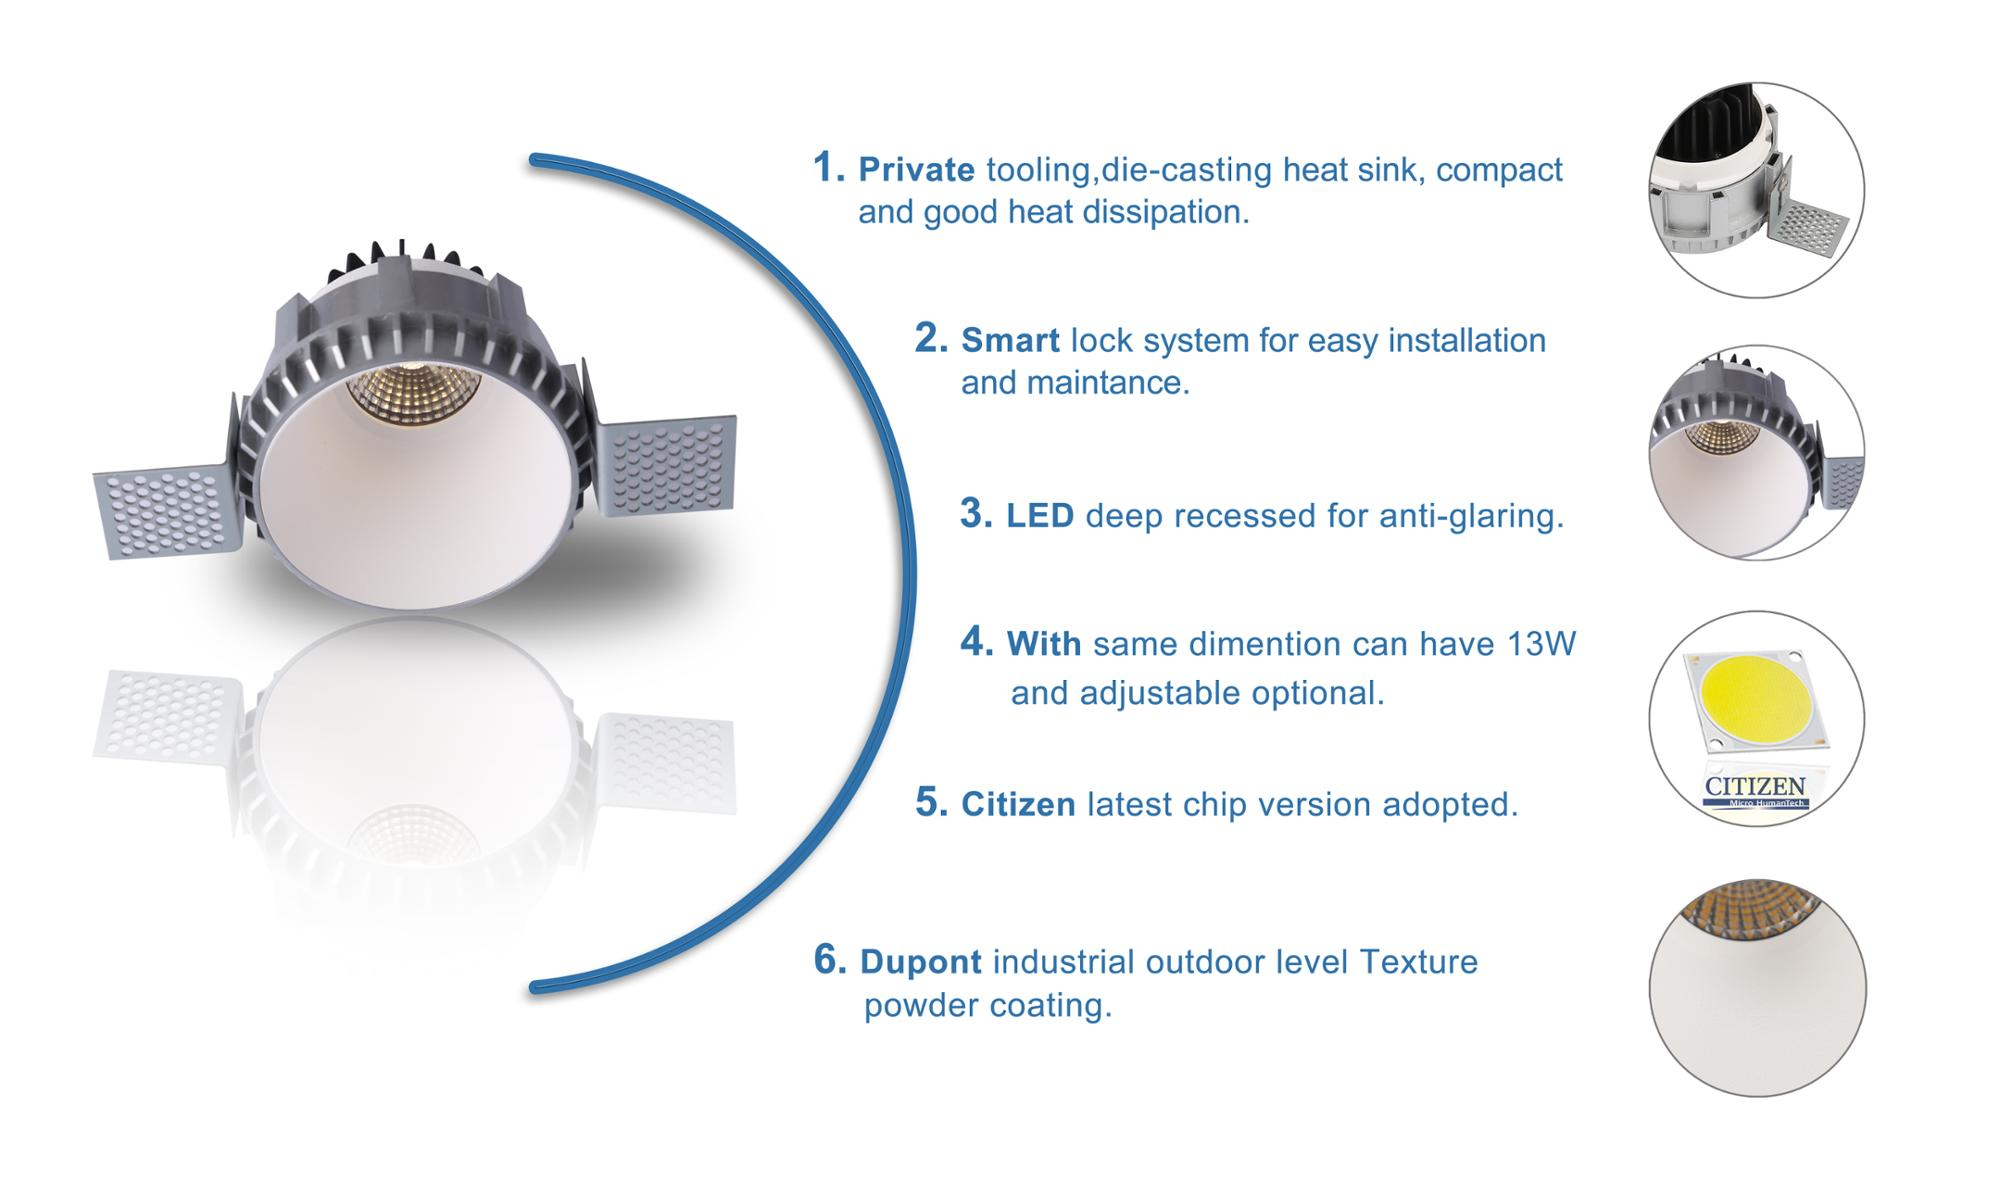 New Dali Ip44 10W Trimless Dimmable Ceiling Recessed Cob Led Downlight